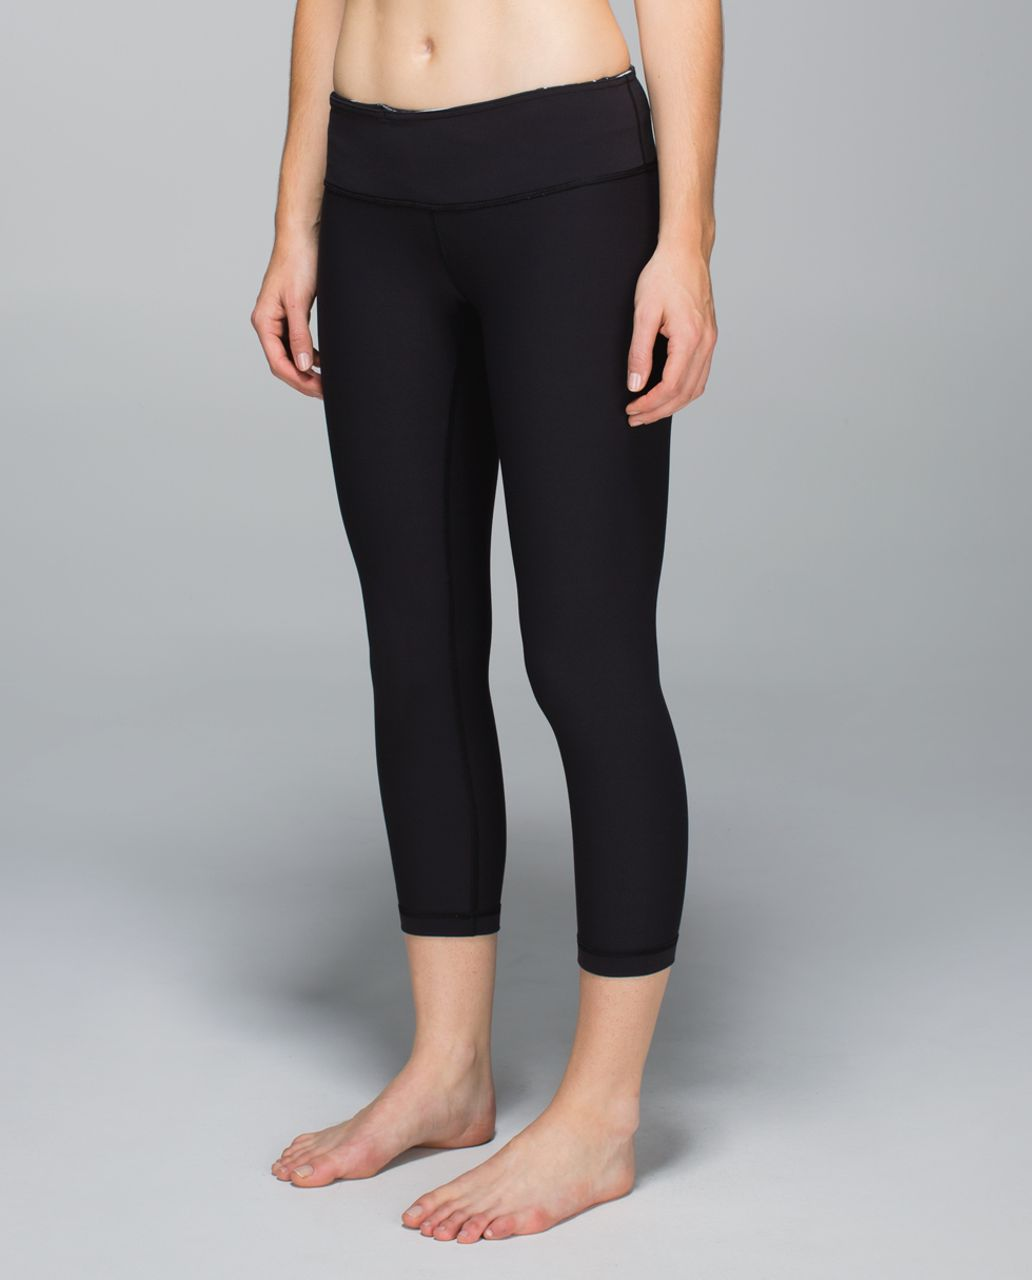 Lululemon Wunder Under Crop - Black / Wi14 Quilt 3